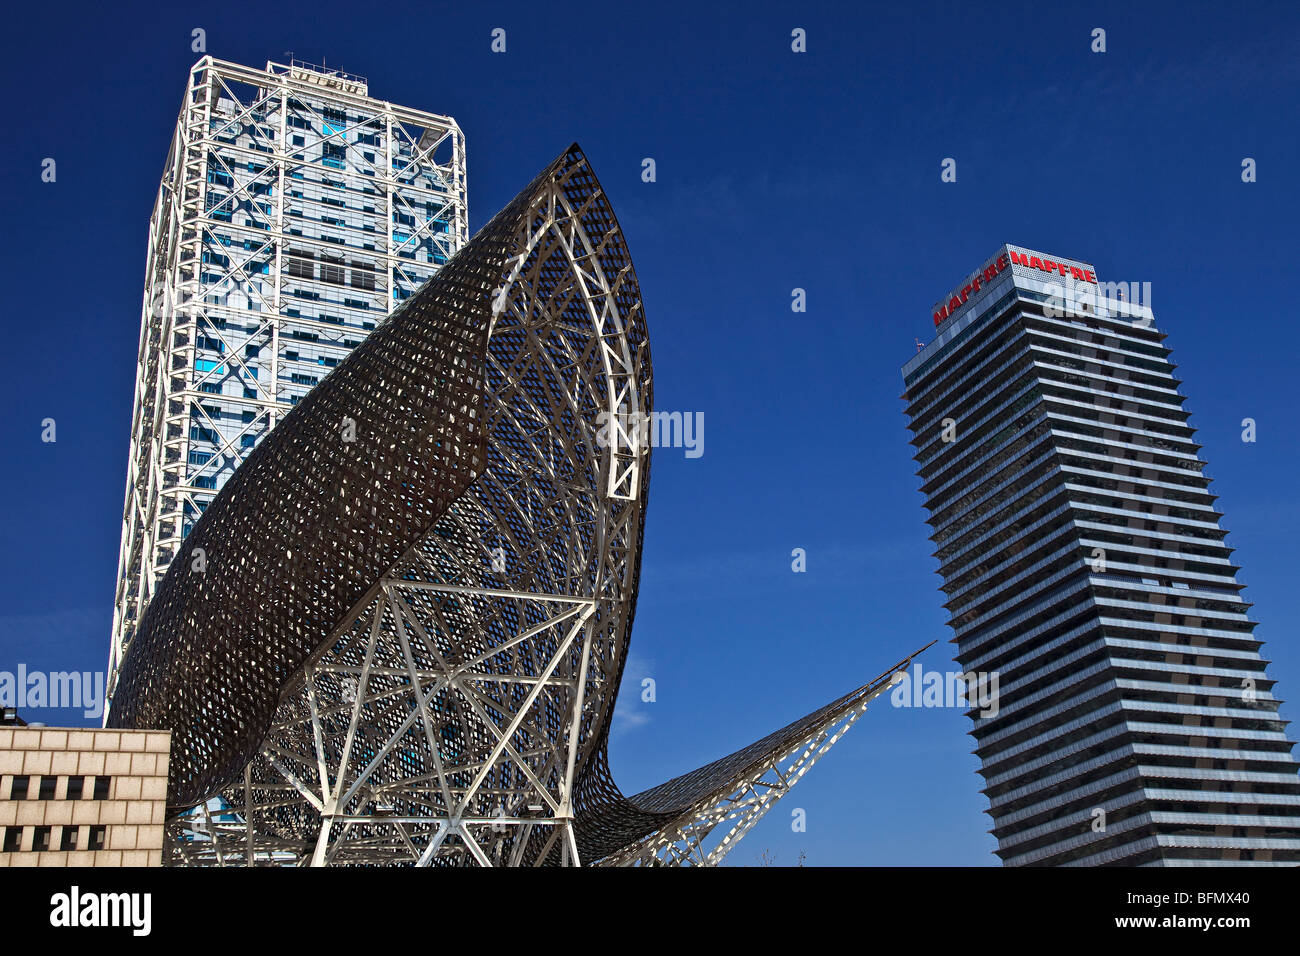 Spain, Cataluna, Barcelona, la Barceloneta, Hotel Arts, Architects-Skidmore Owings and Merril. Golden Fish- Frank - Stock Image